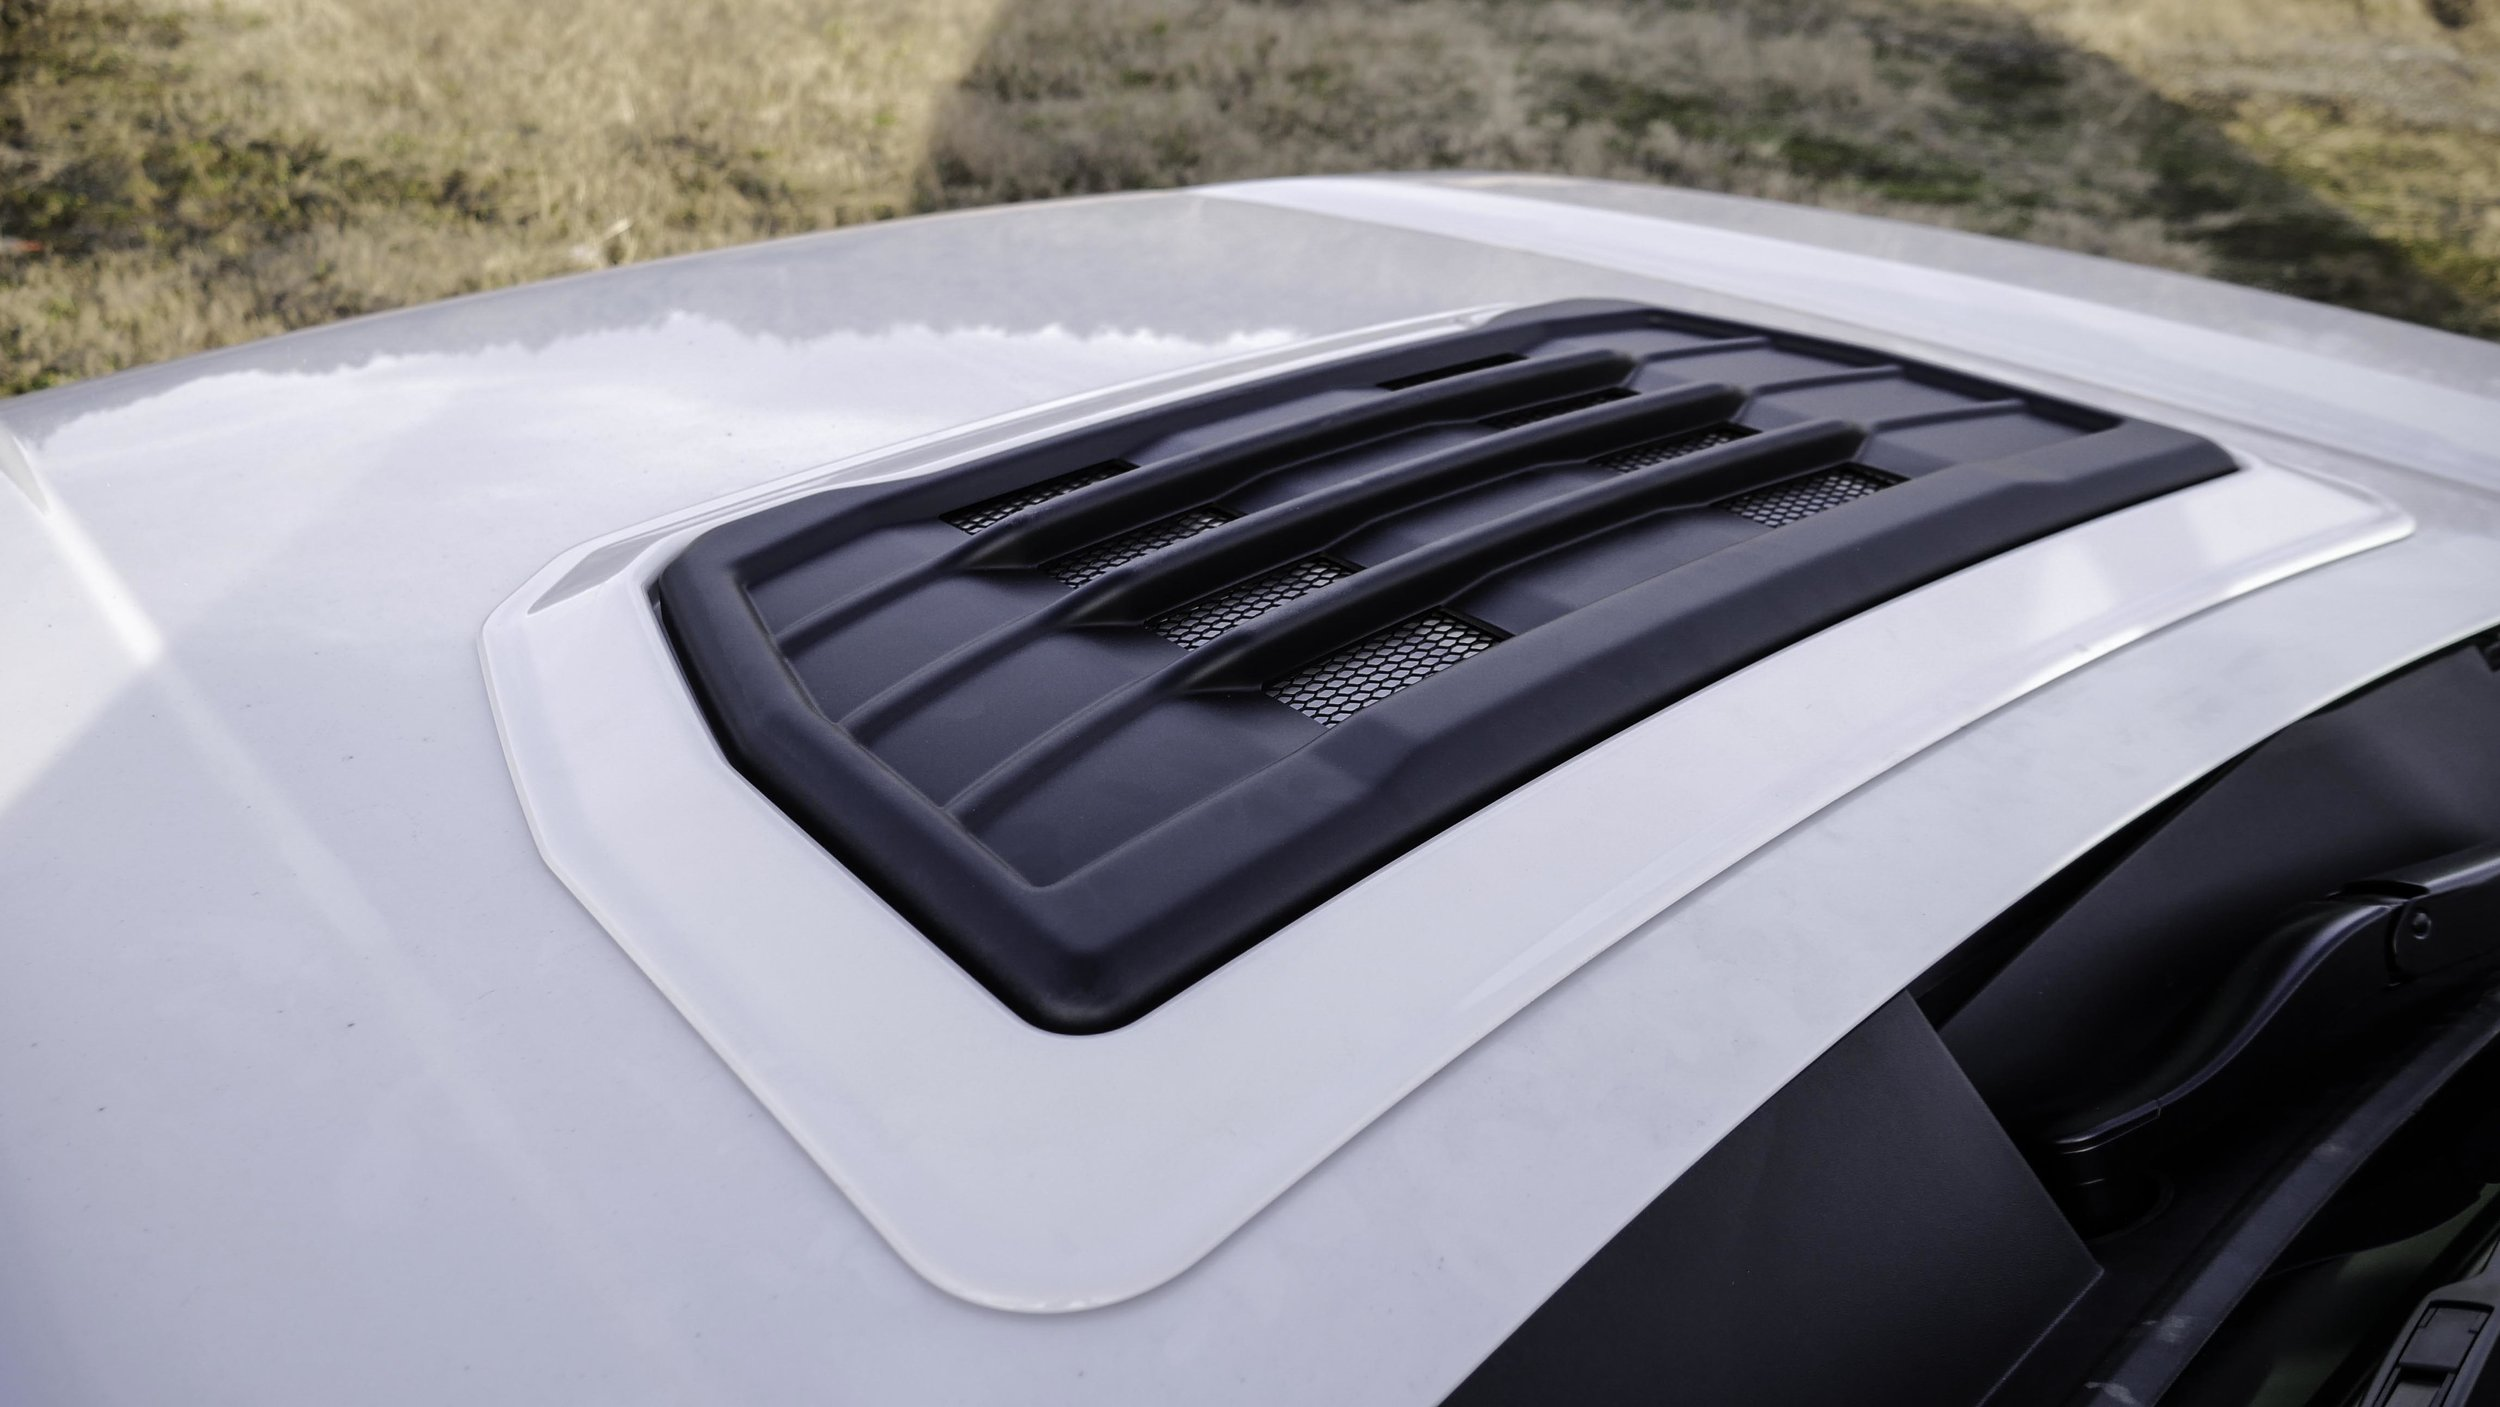 2019 GMC Sierra Black Widow Hood Vent.jpg